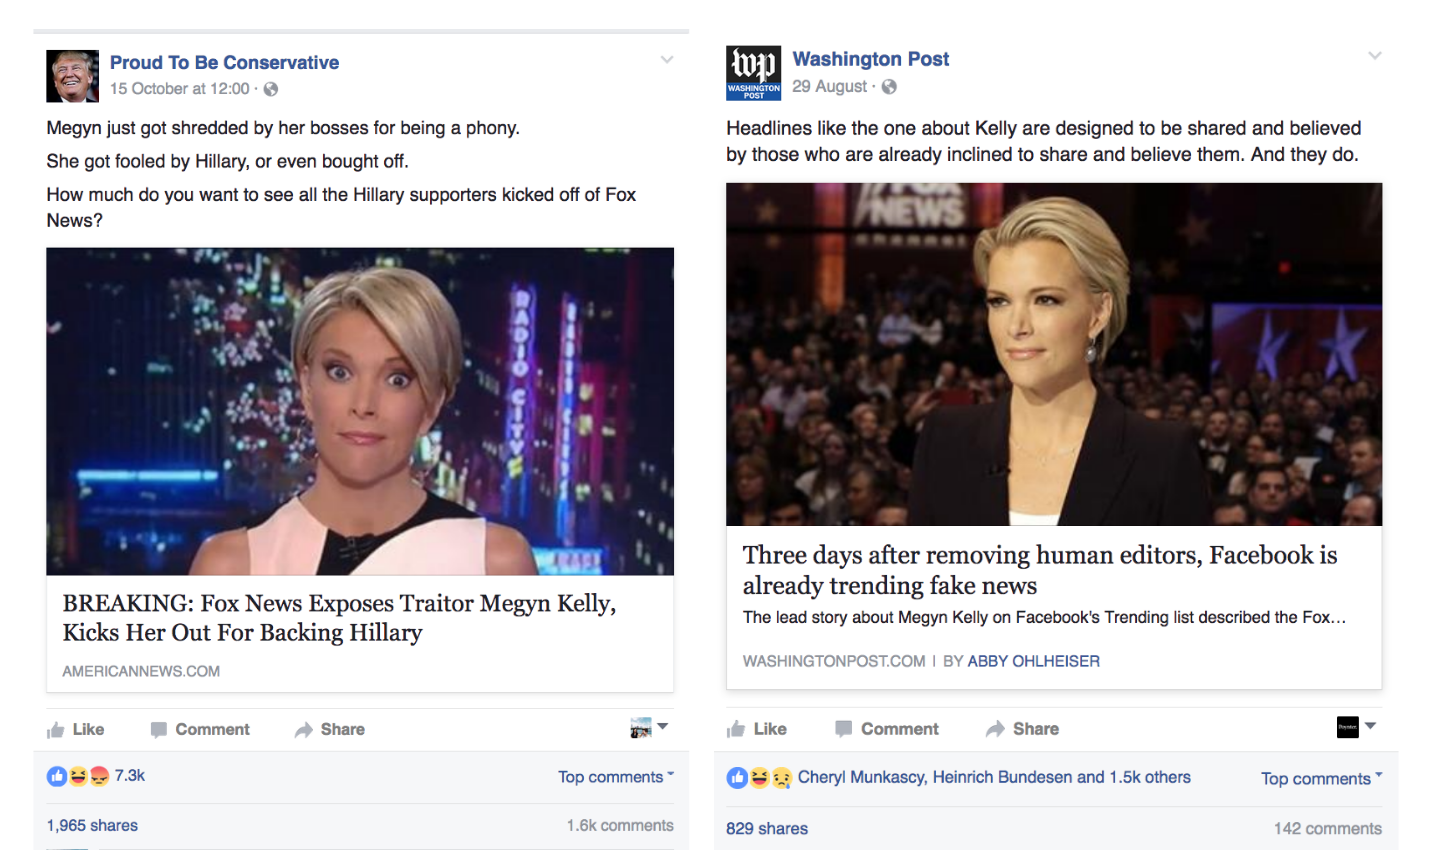 Compare and contrast. Fake post (left) does much better than earlier correction post (right)